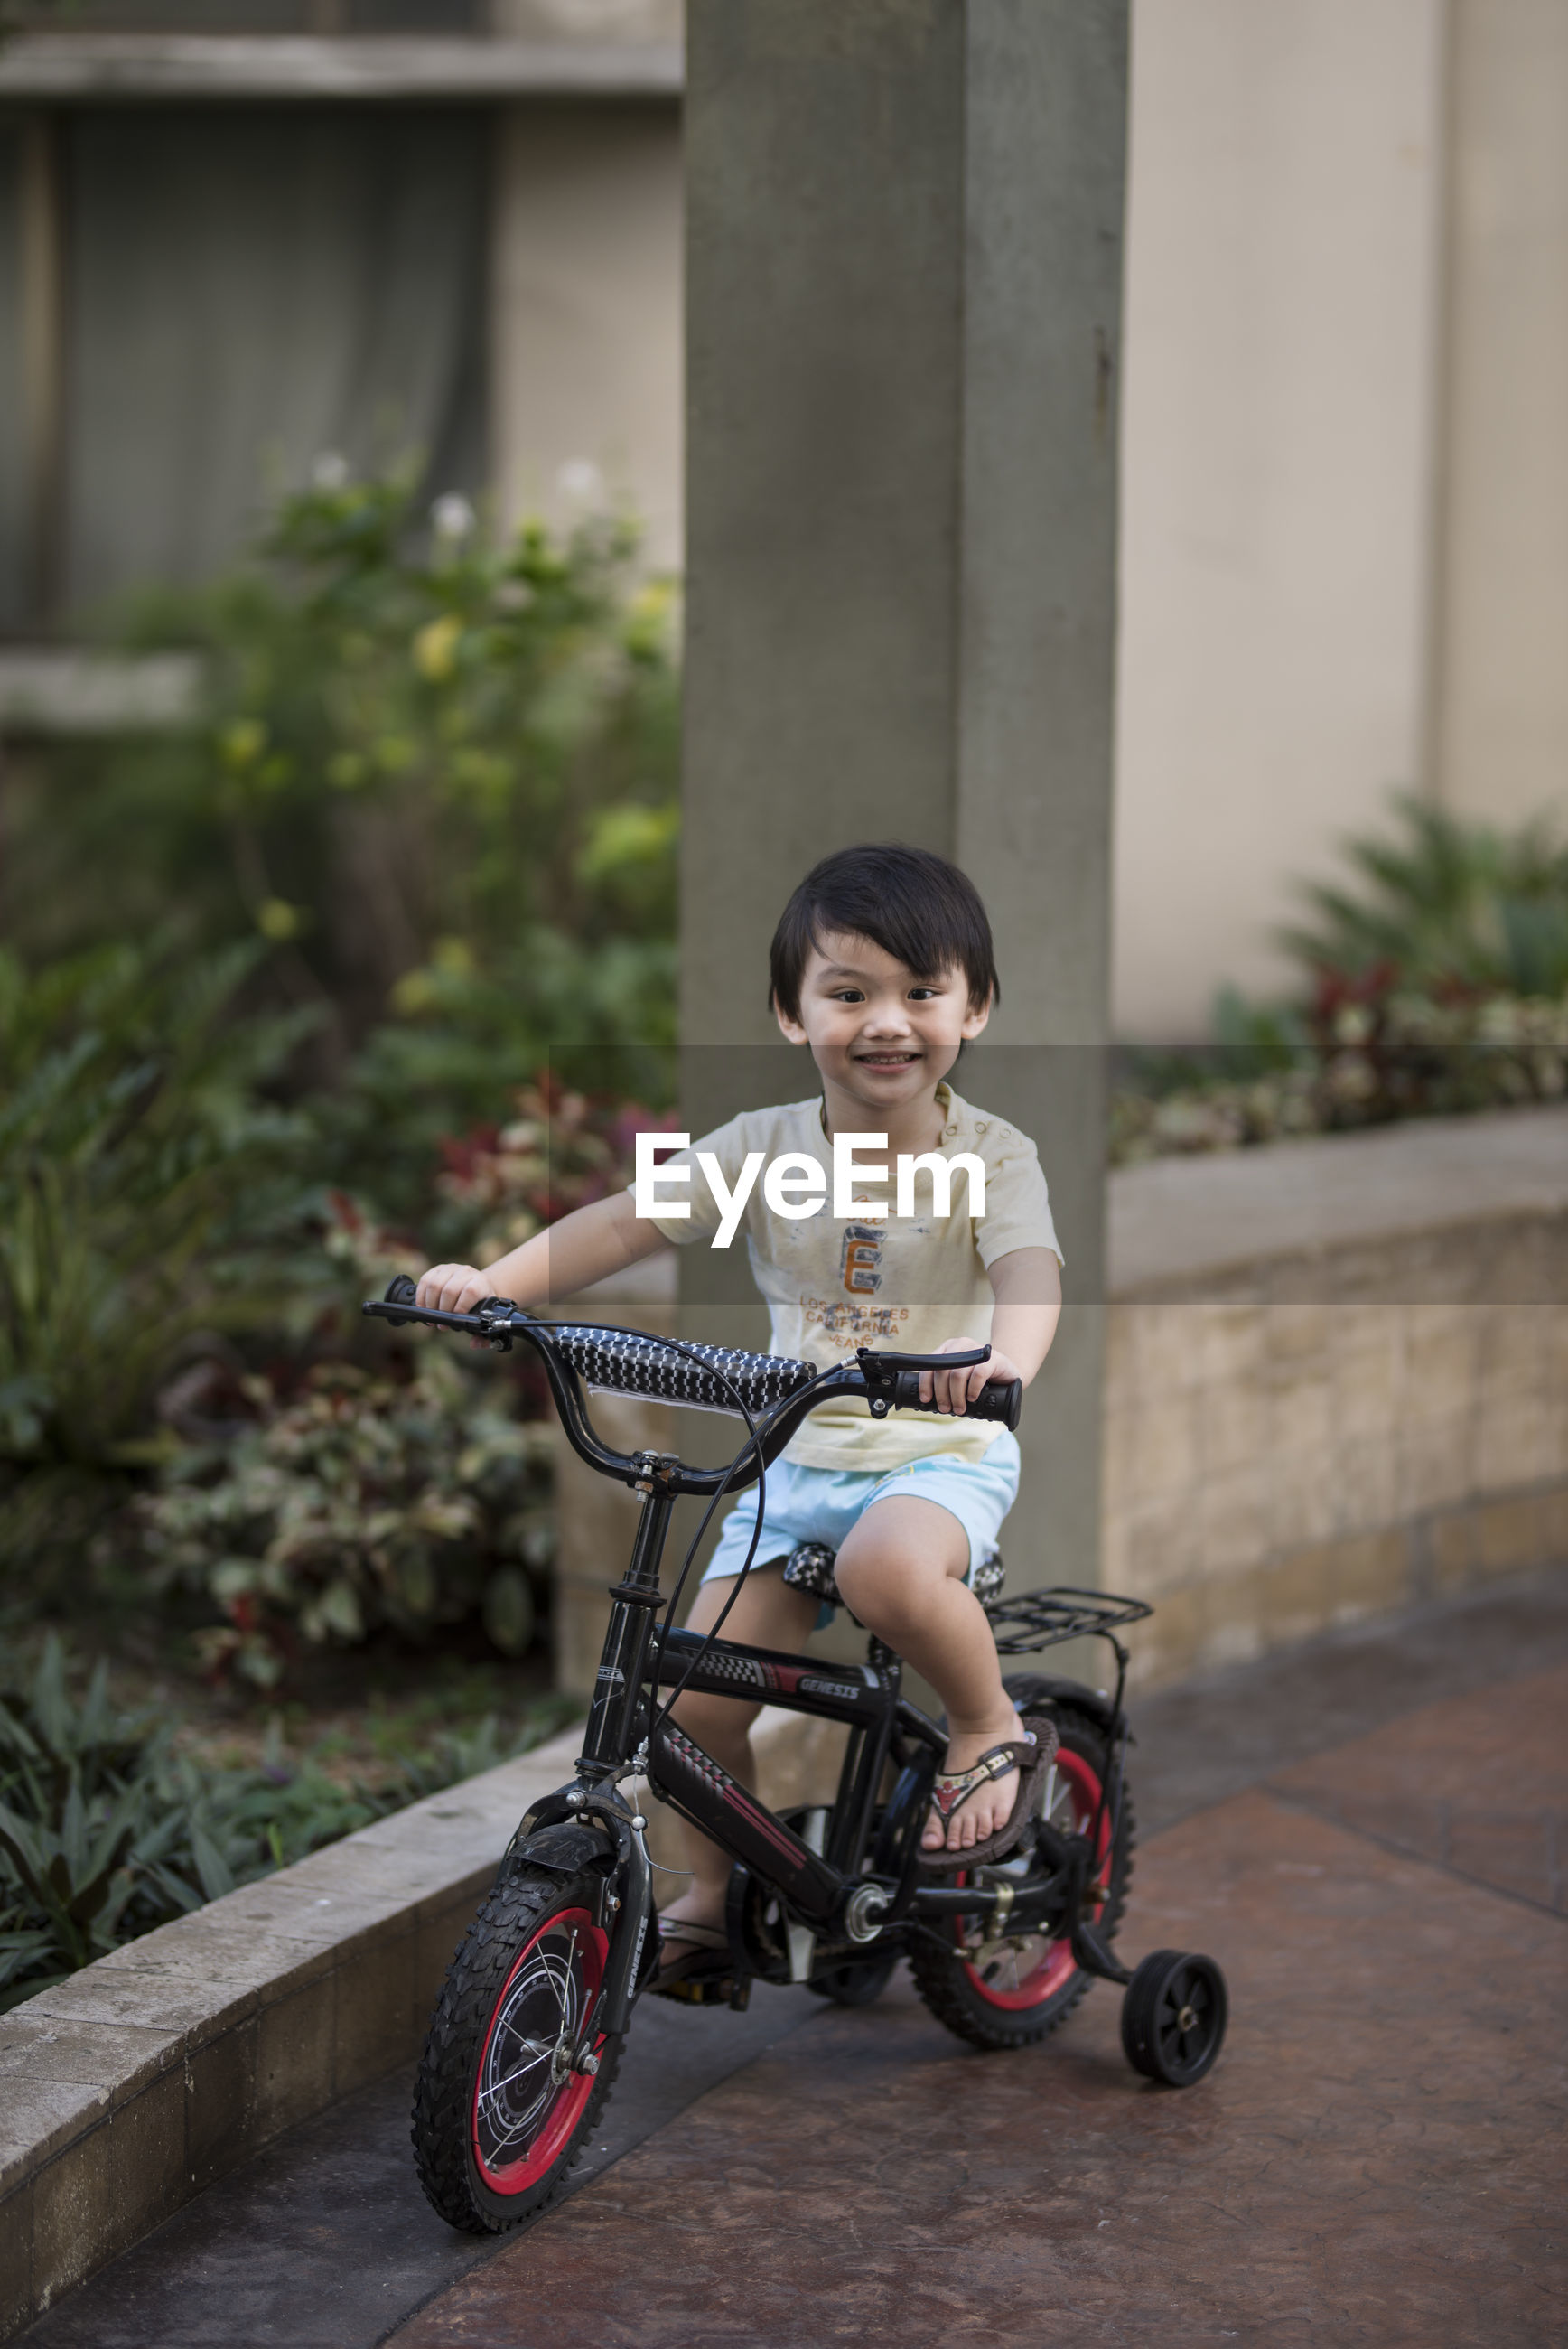 Portrait of cute boy riding bicycle